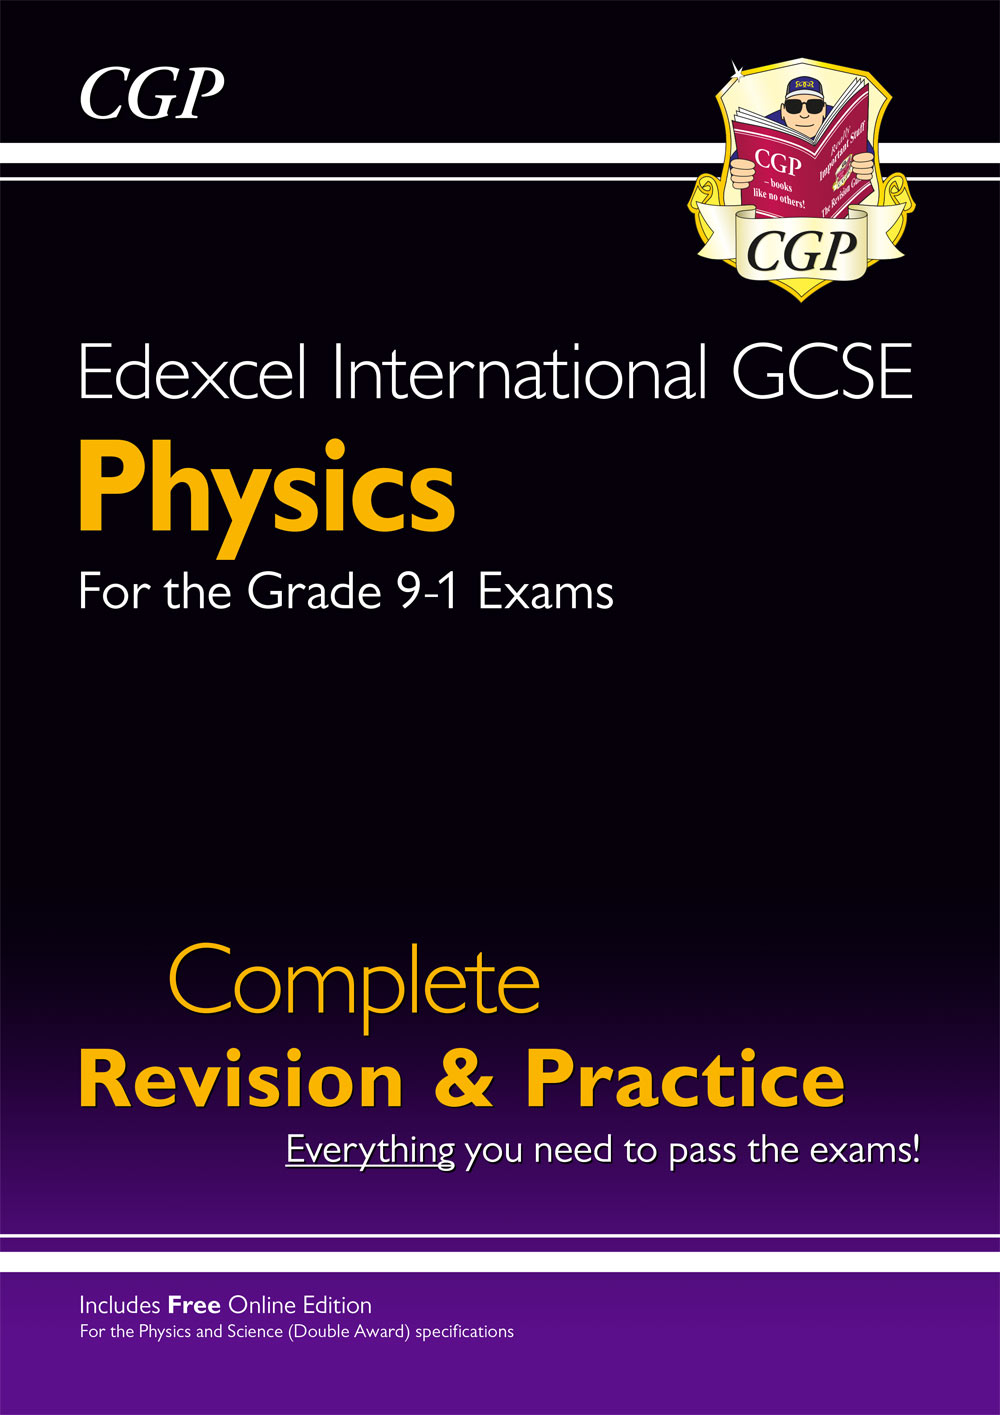 PESI42 - New Grade 9-1 Edexcel International GCSE Physics: Complete Revision & Practice with Online